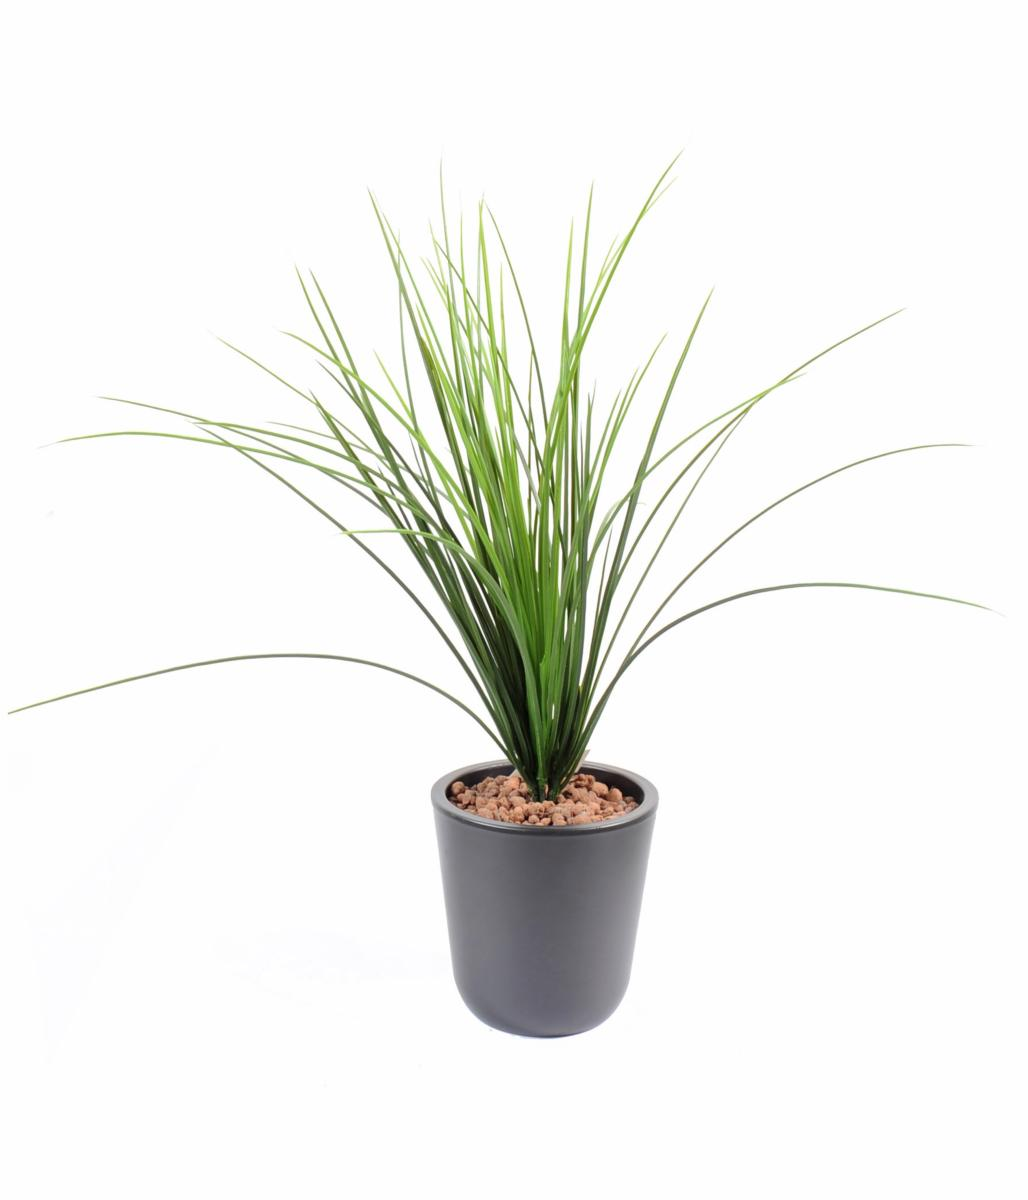 Plante artificielle herbe onion grass plastique en piquet for Plantes en plastique exterieur